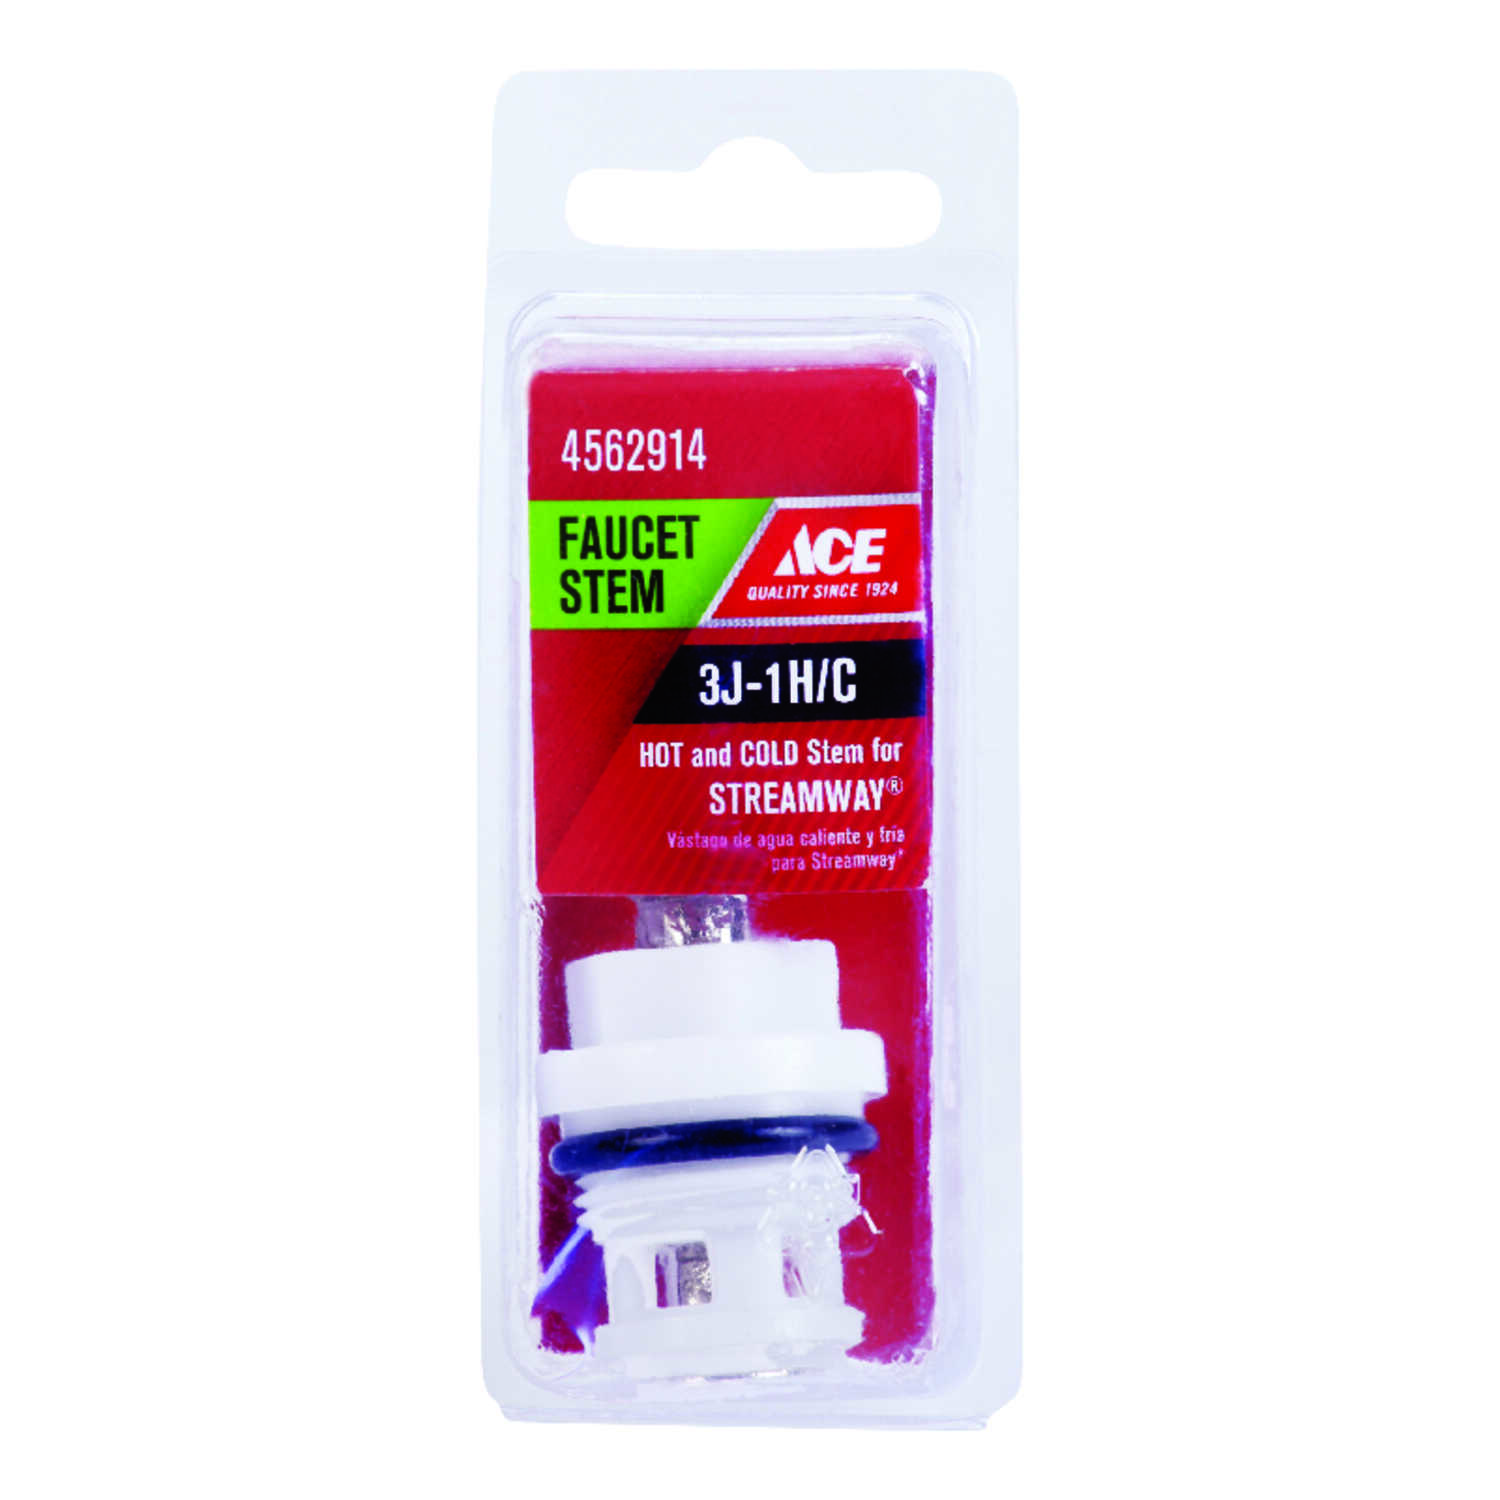 Ace  Hot and Cold  3J-1H/C  Faucet Stem  For Streamway